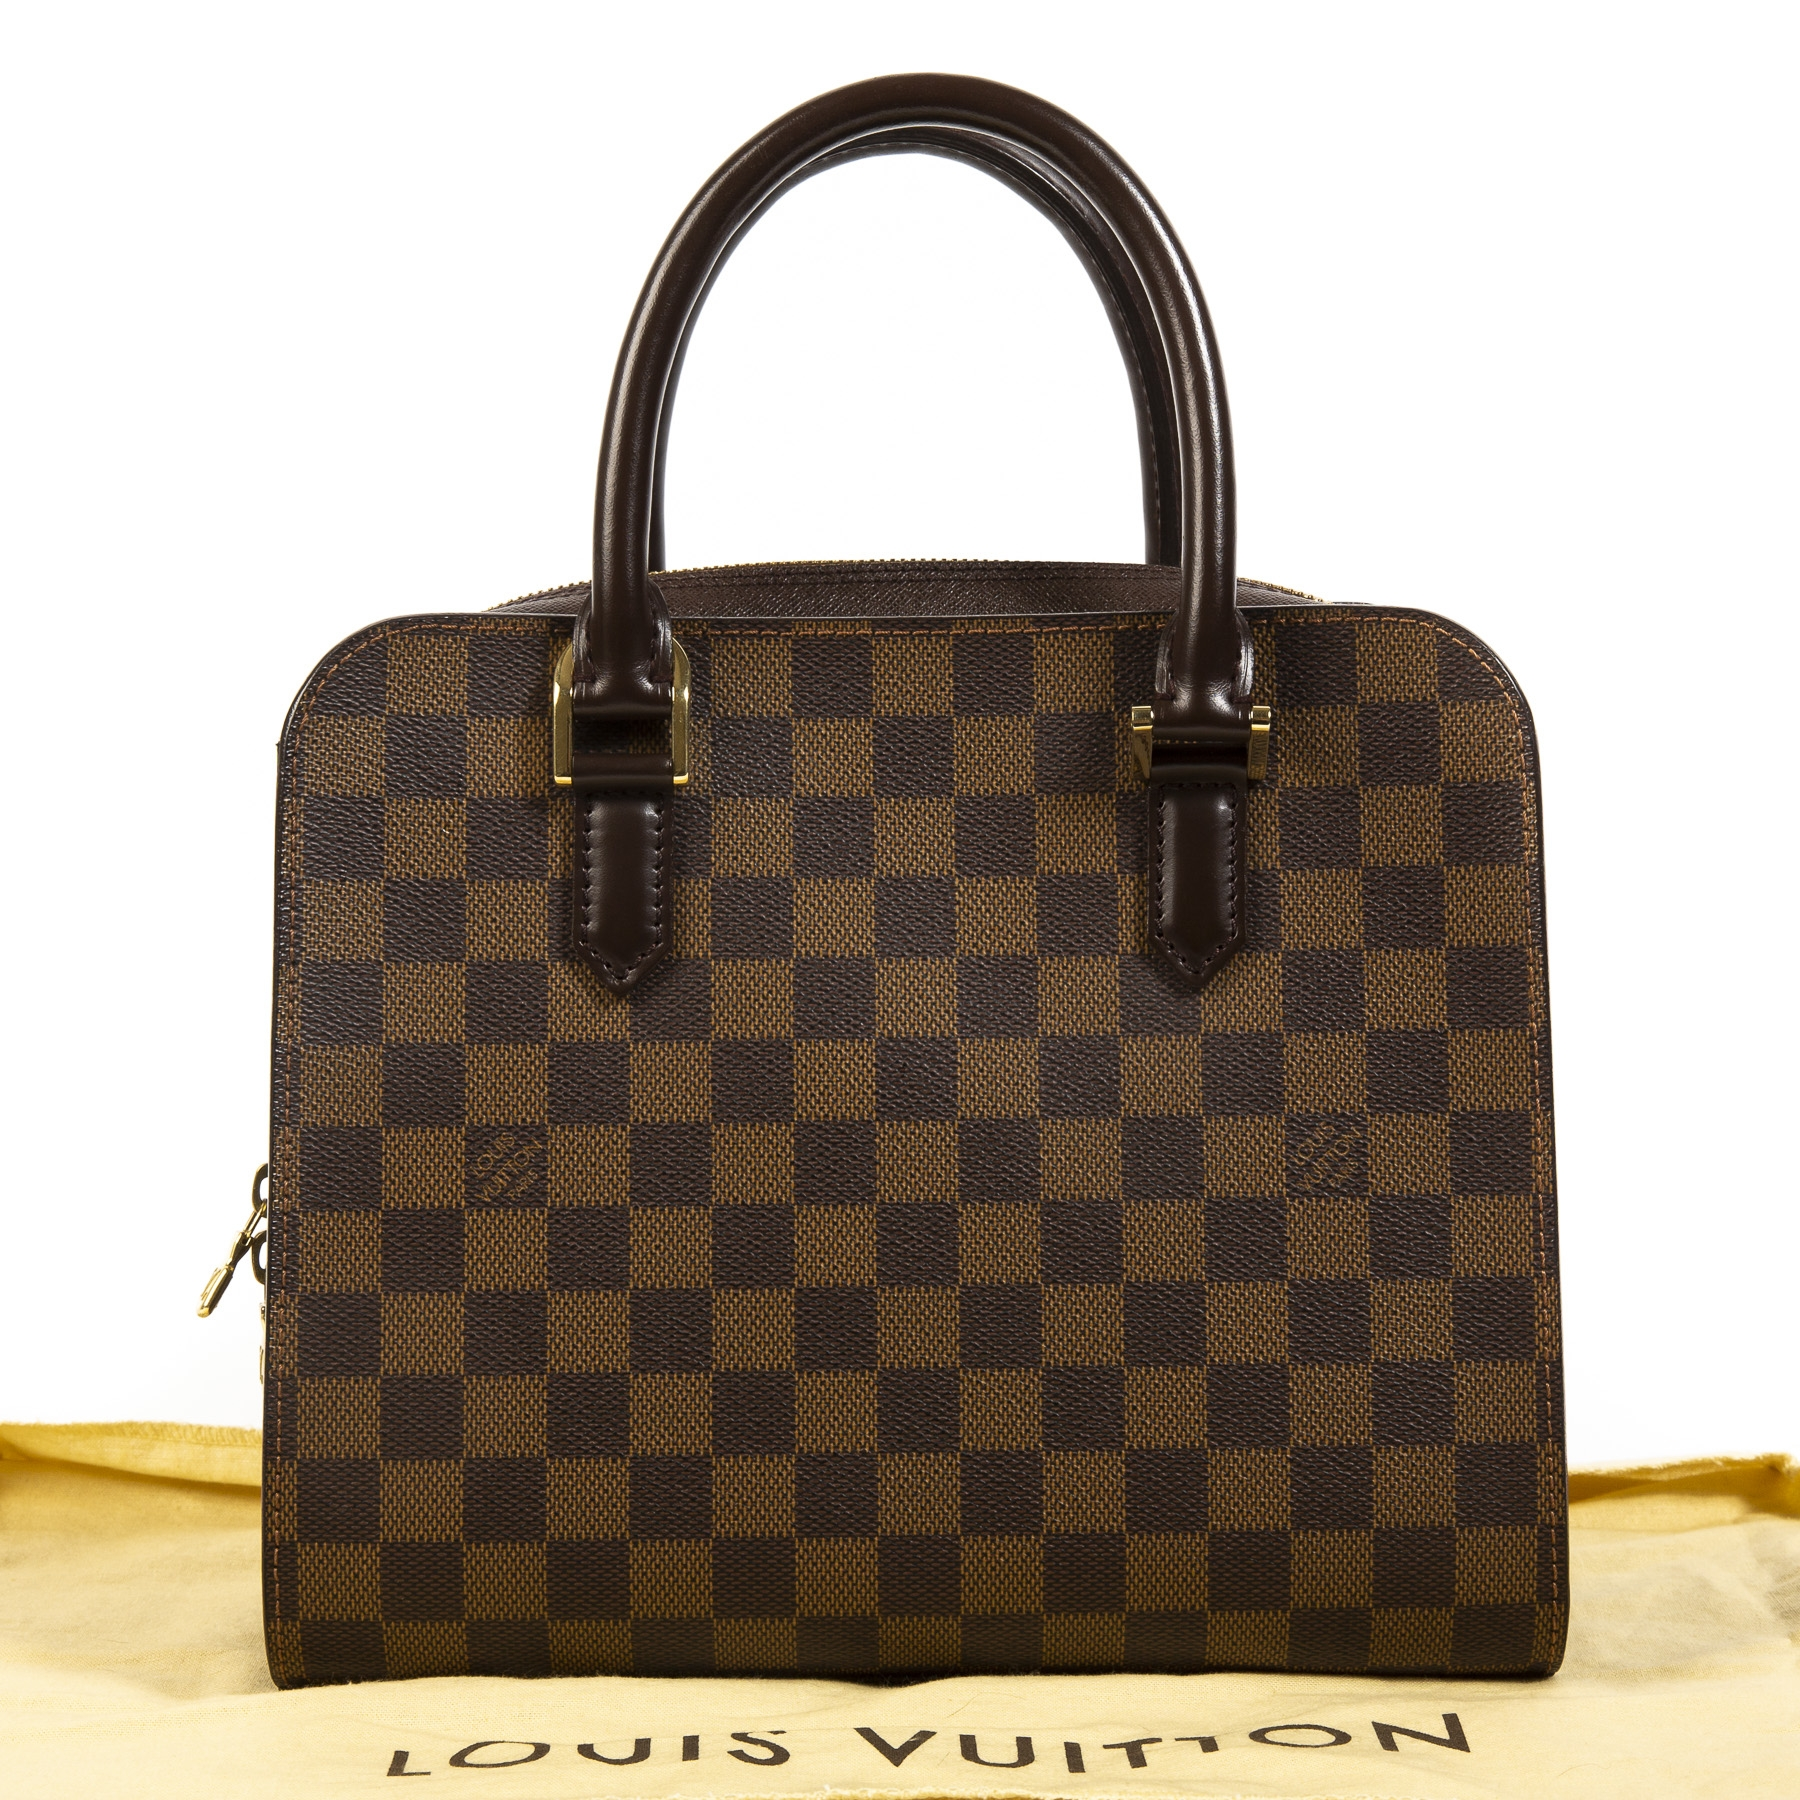 Looking for an authentic Louis Vuitton Damier Ebene Brera for the best price?